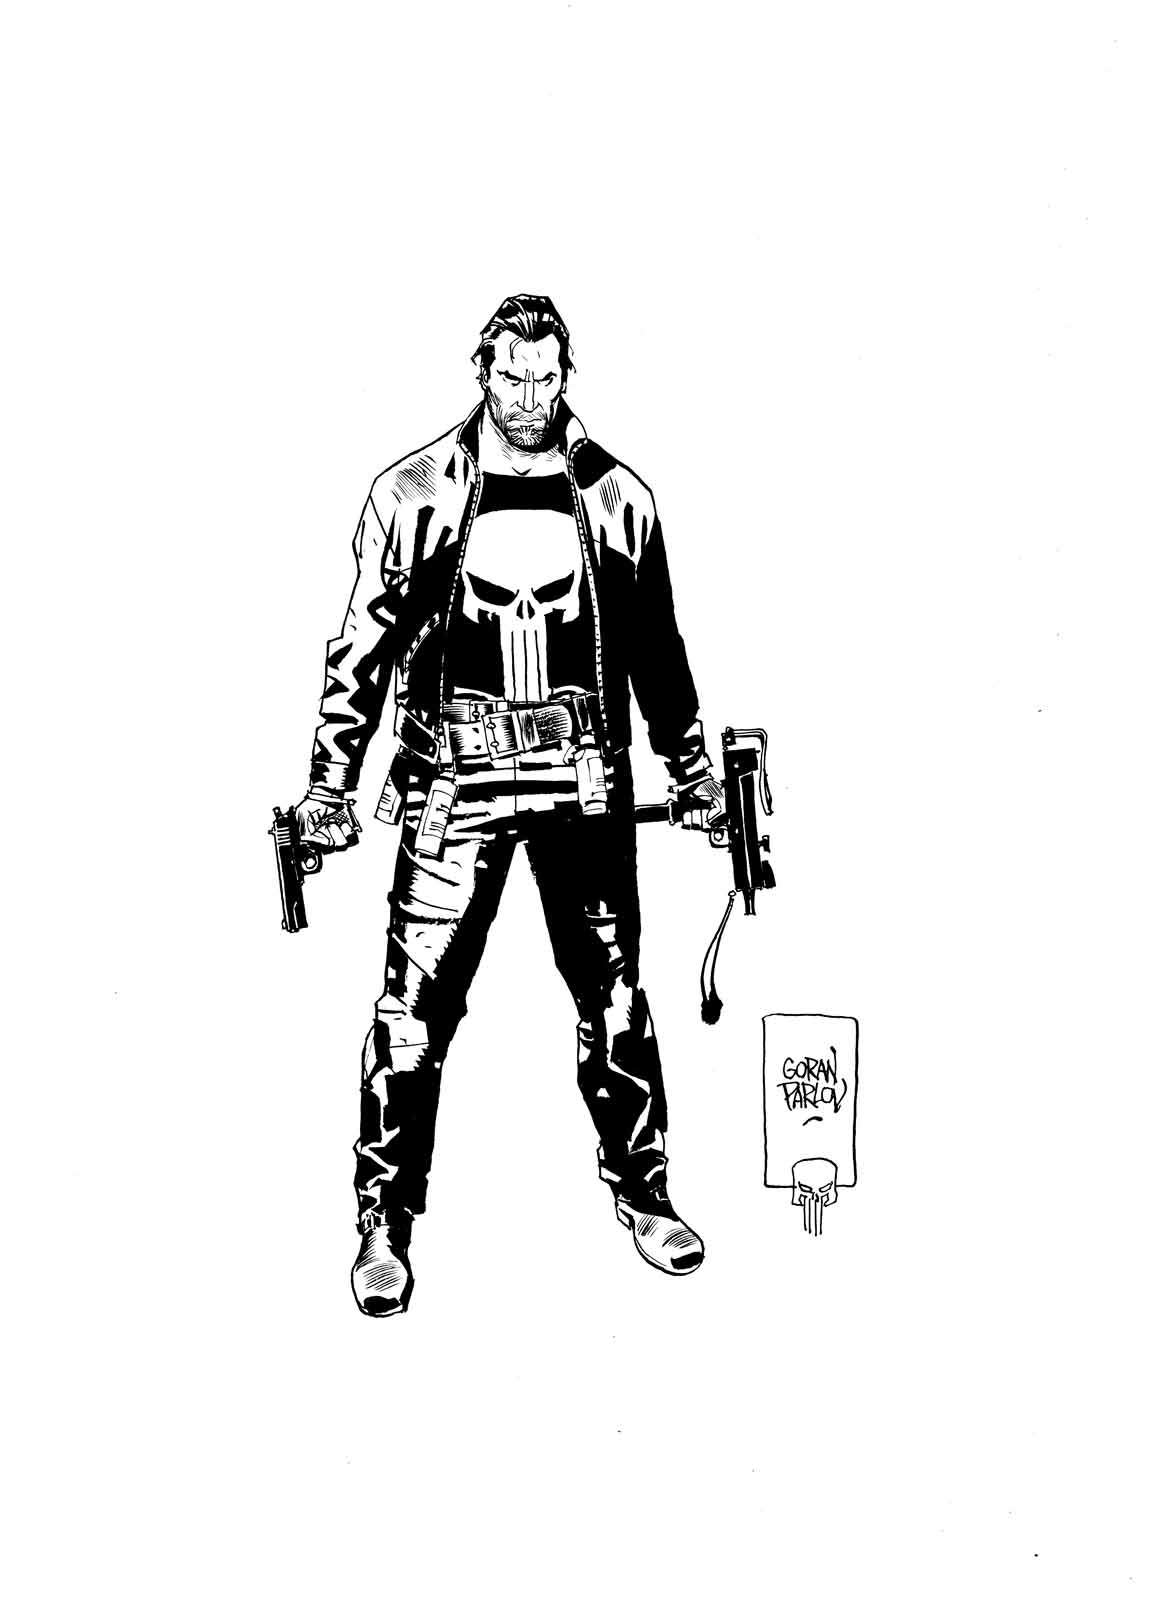 Punisher art by Goran Parlov